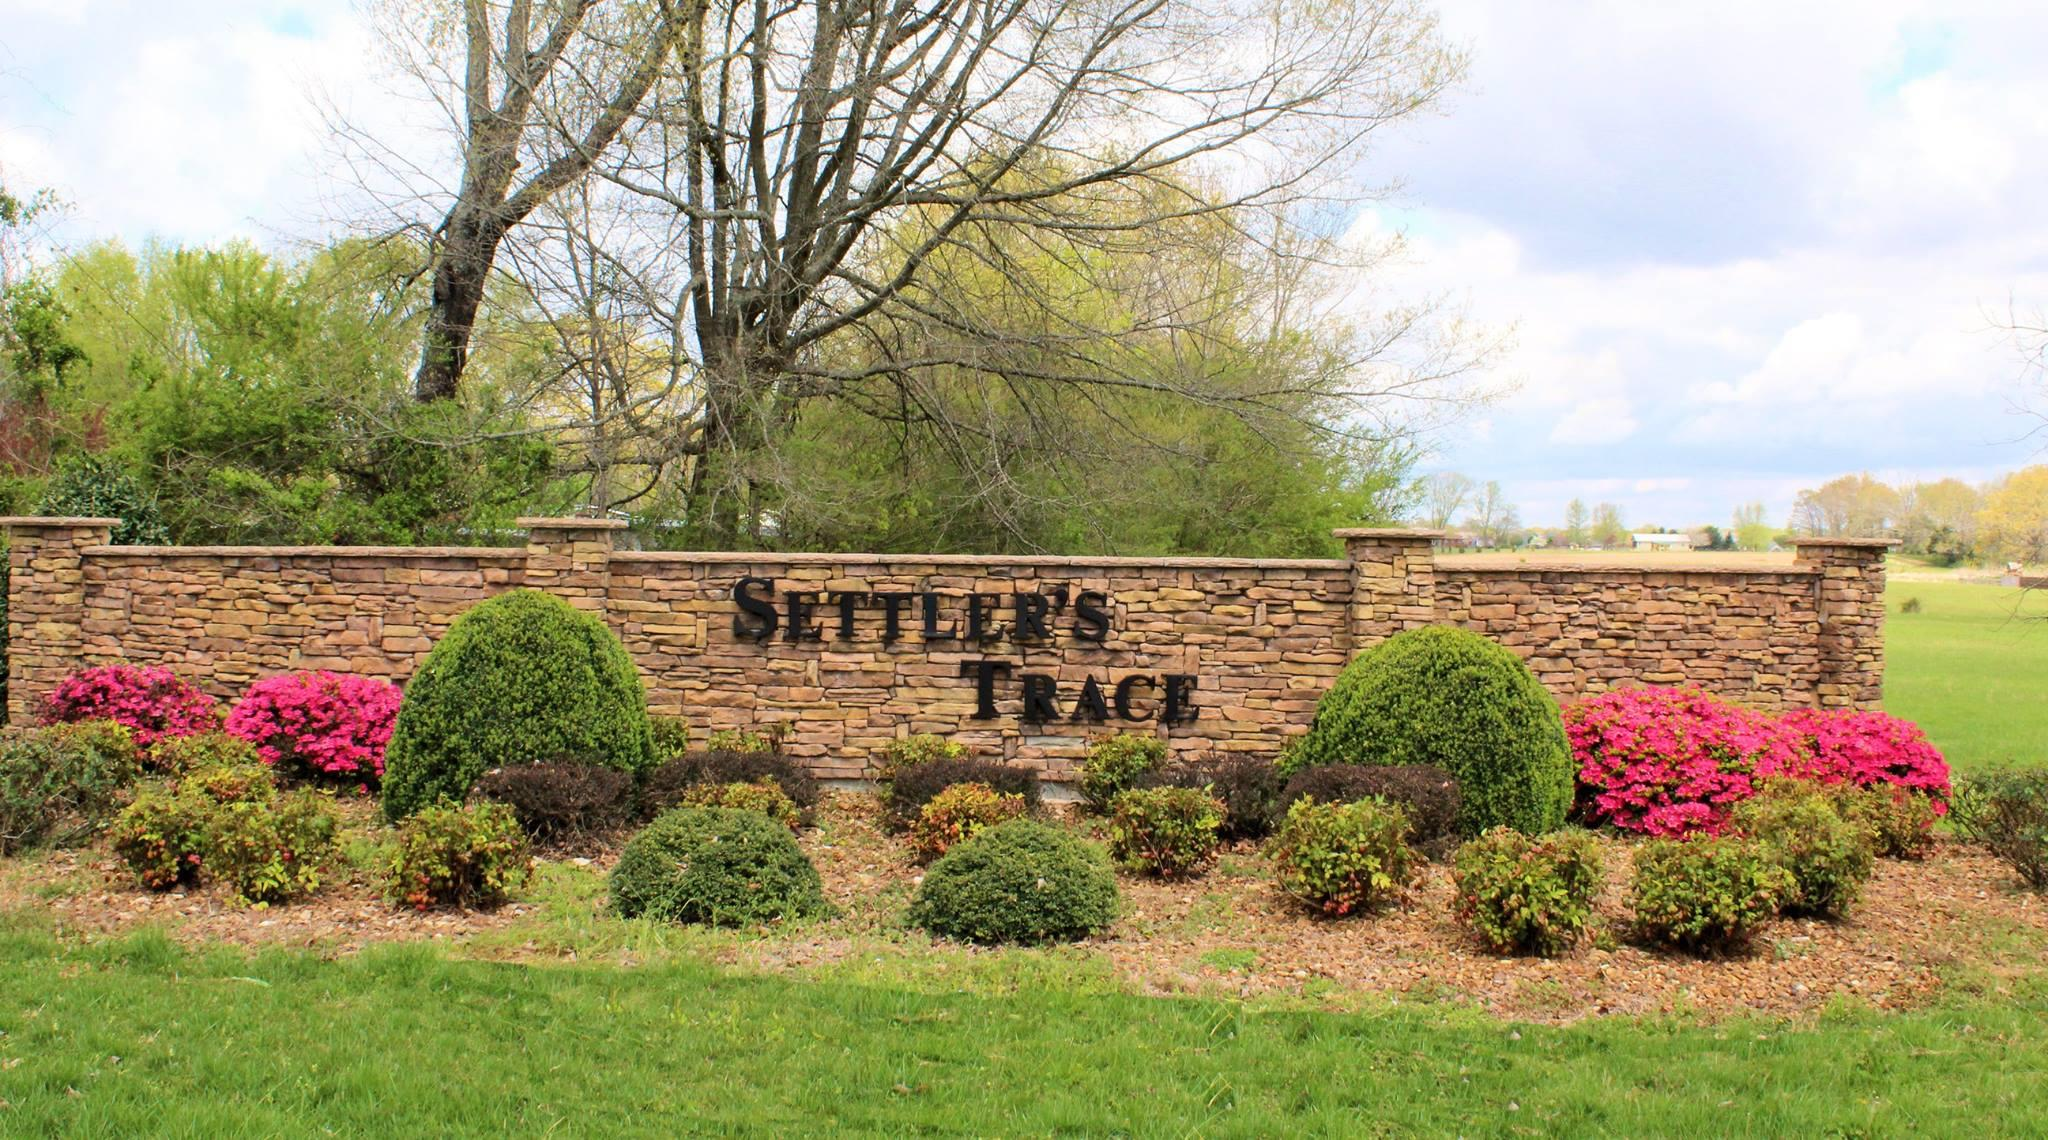 0 Settlers Trce Lot #24, Tullahoma, TN 37388 - Tullahoma, TN real estate listing